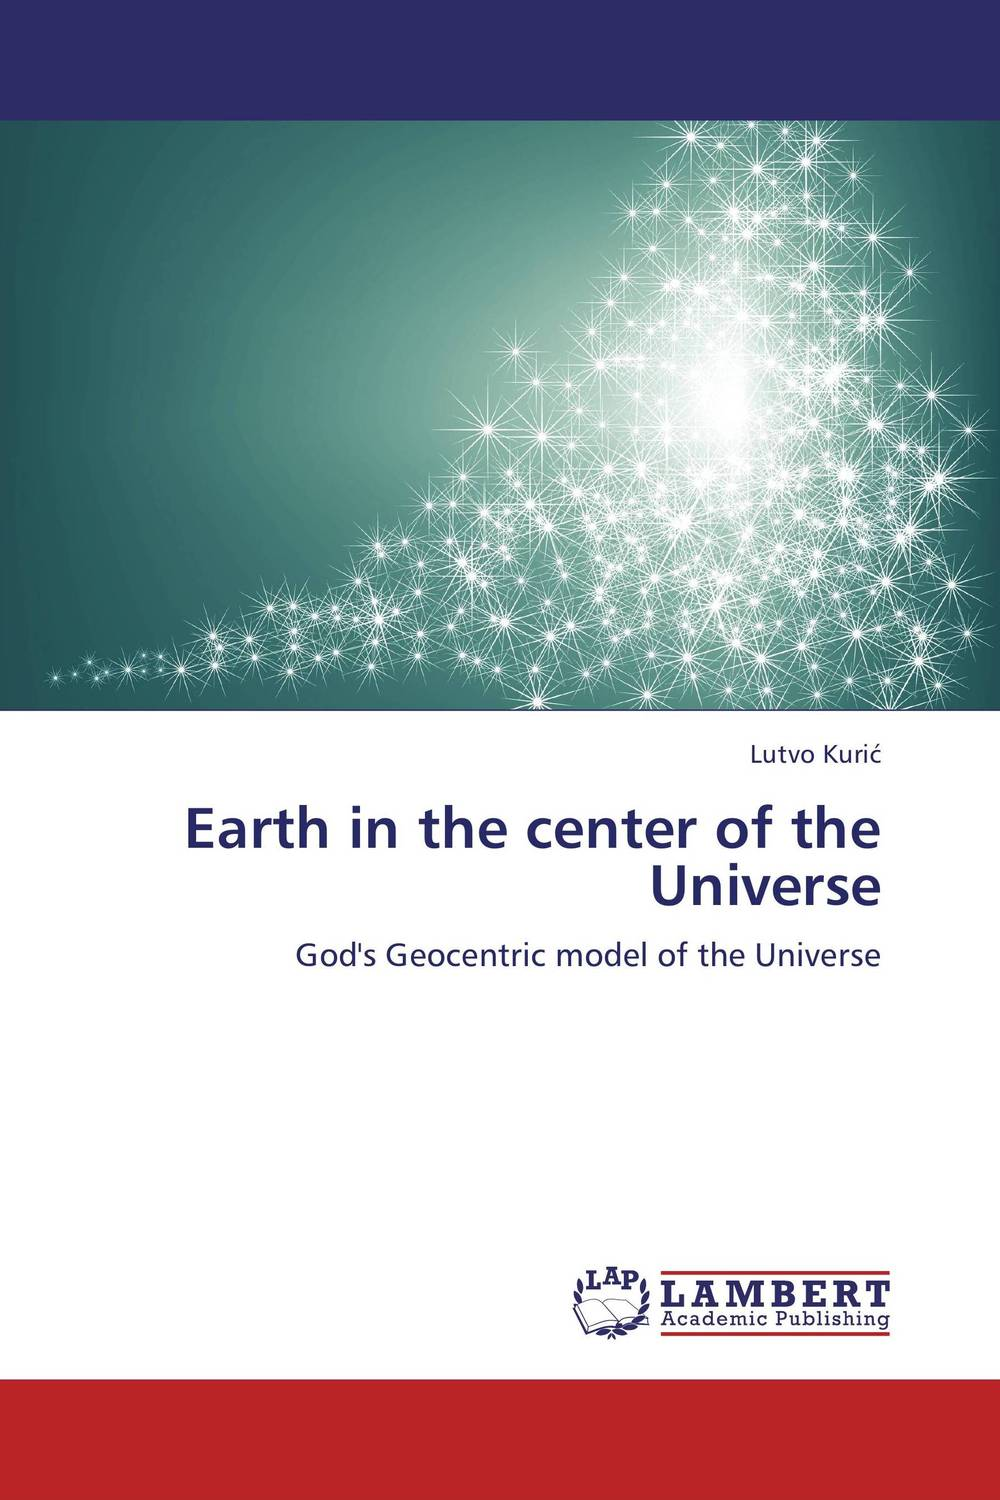 Earth in the center of the Universe verne j journey to the center of the earth